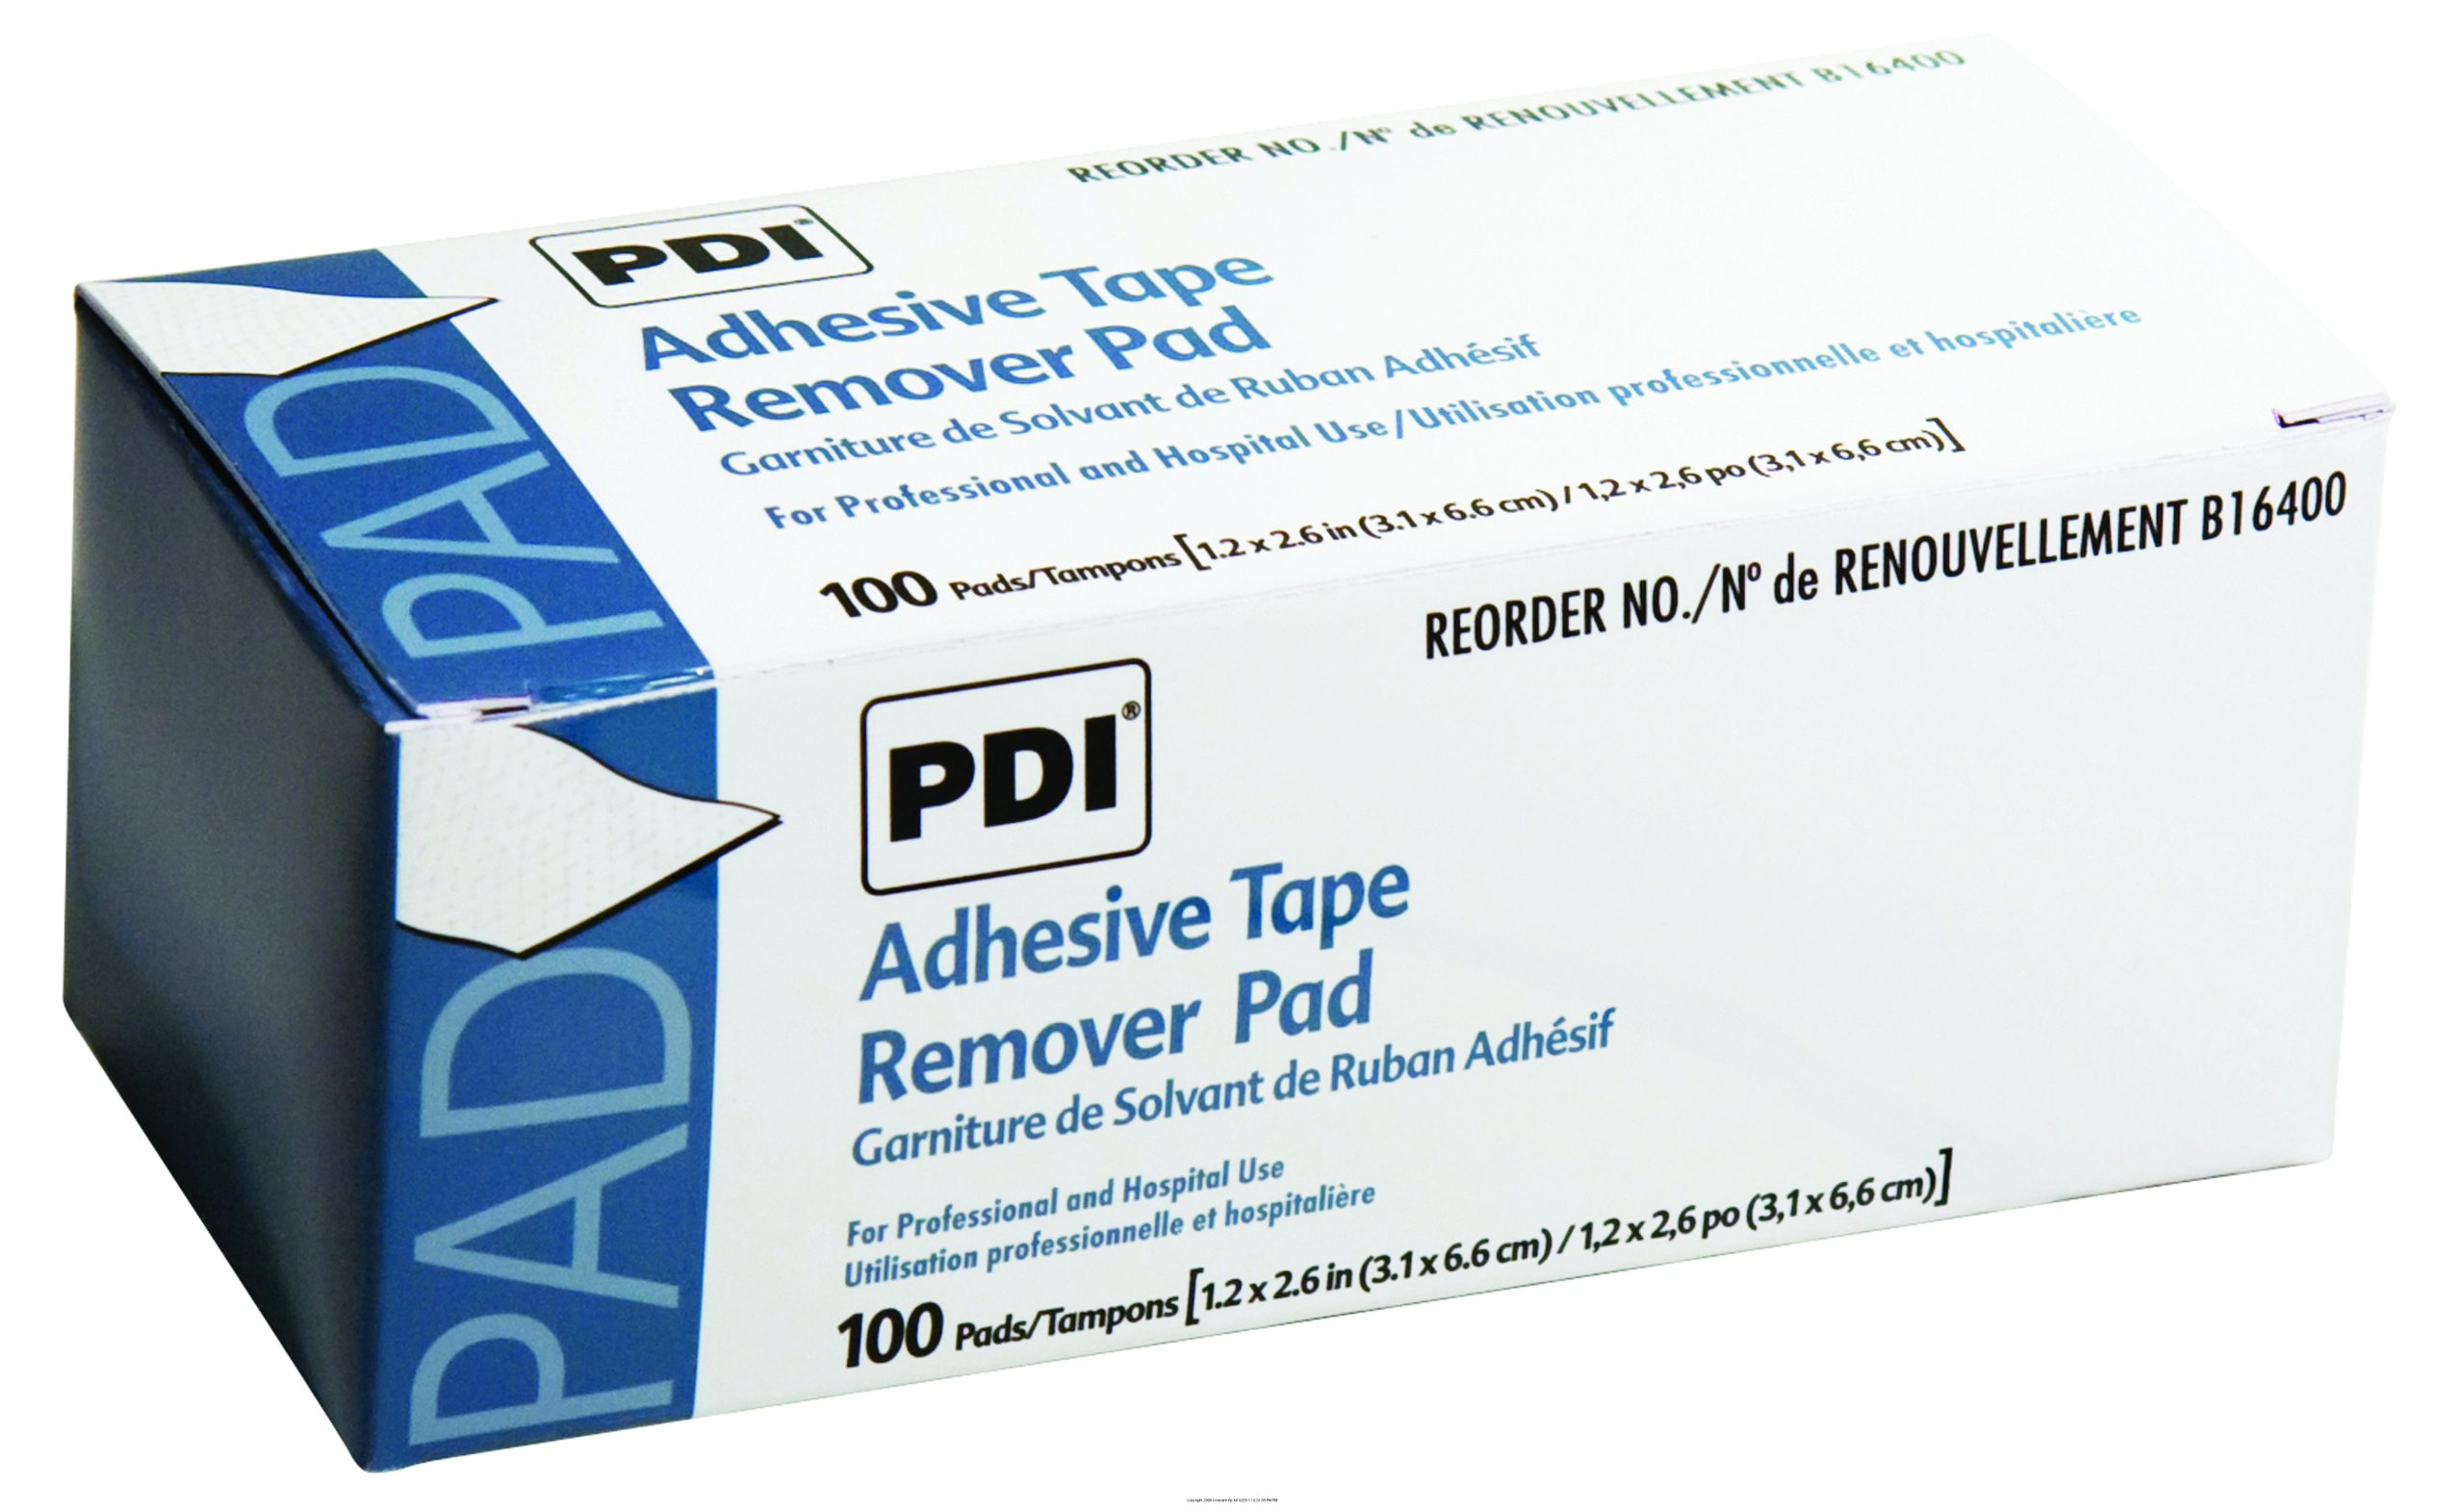 Adhesive Tape Remover Pads, Adh Tape Remvr Pad, (1 CASE, 1000 EACH)